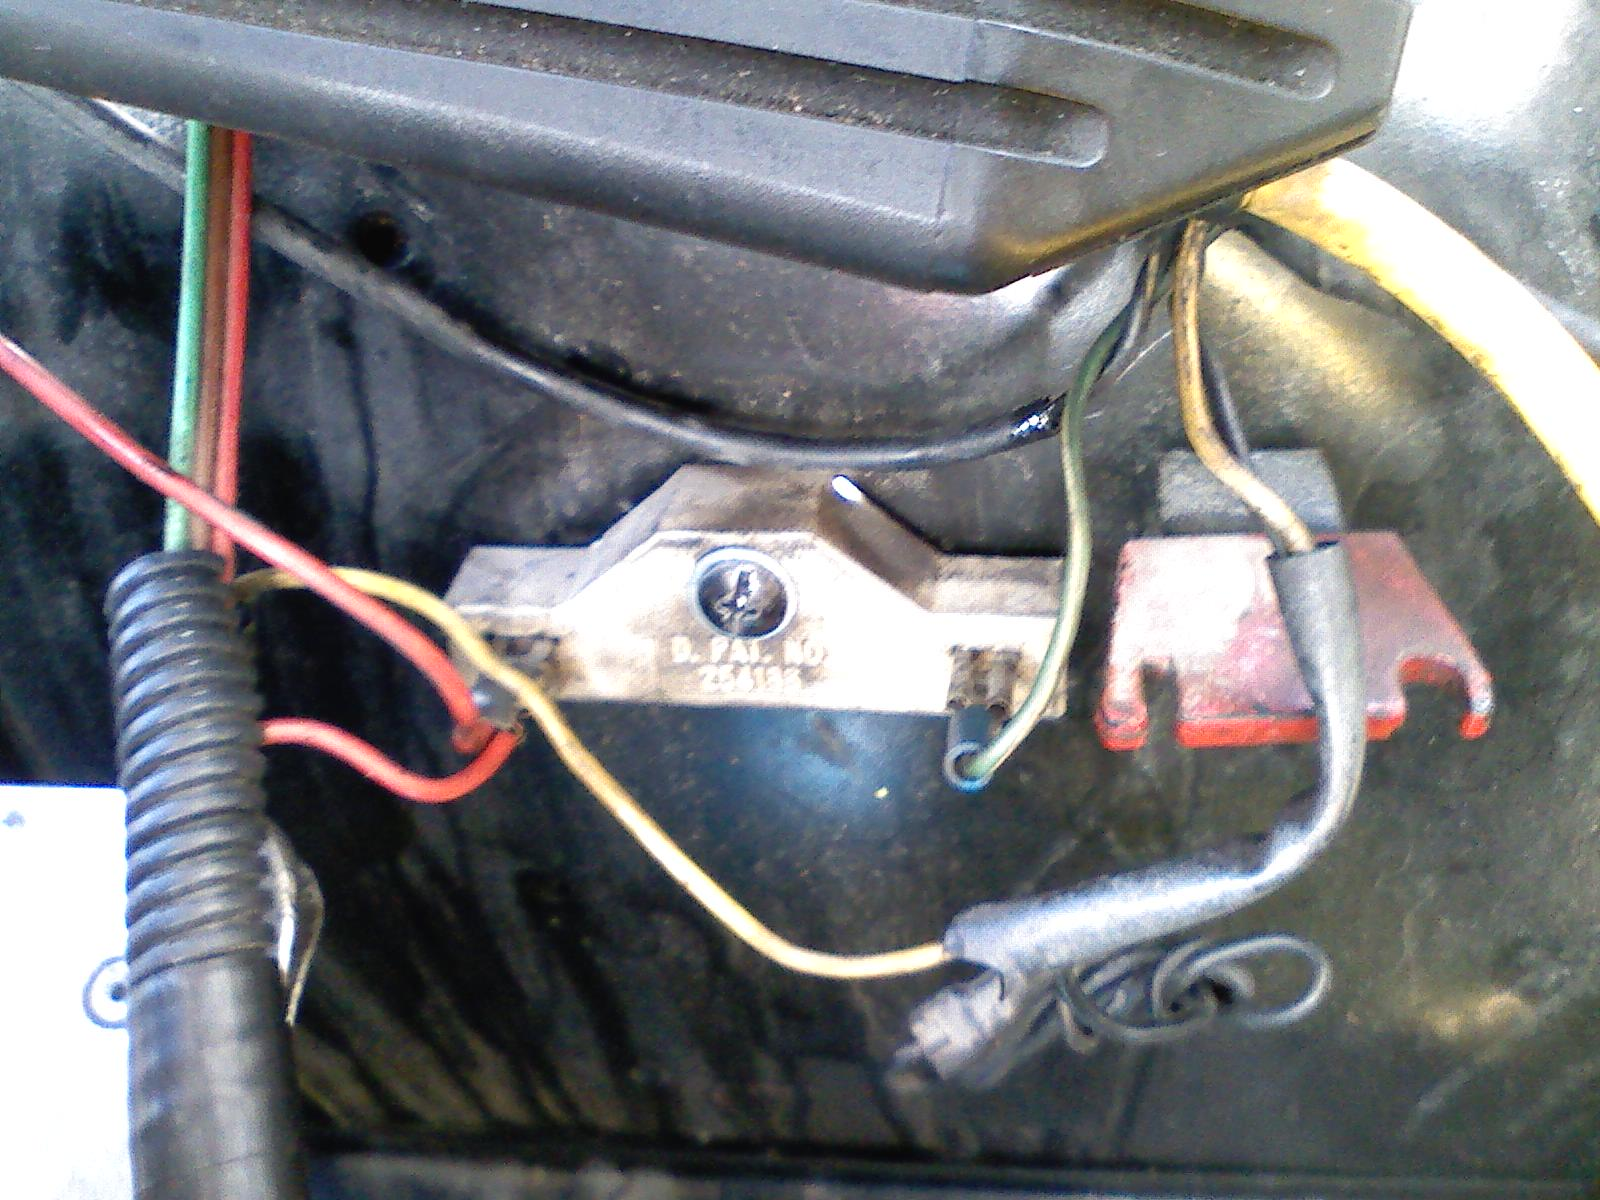 Car Dies Instantly Electic Ignition Problem 72 240z Trouble Mallory Troubleshooting Post 11260 008192400 1284673650 Thumb